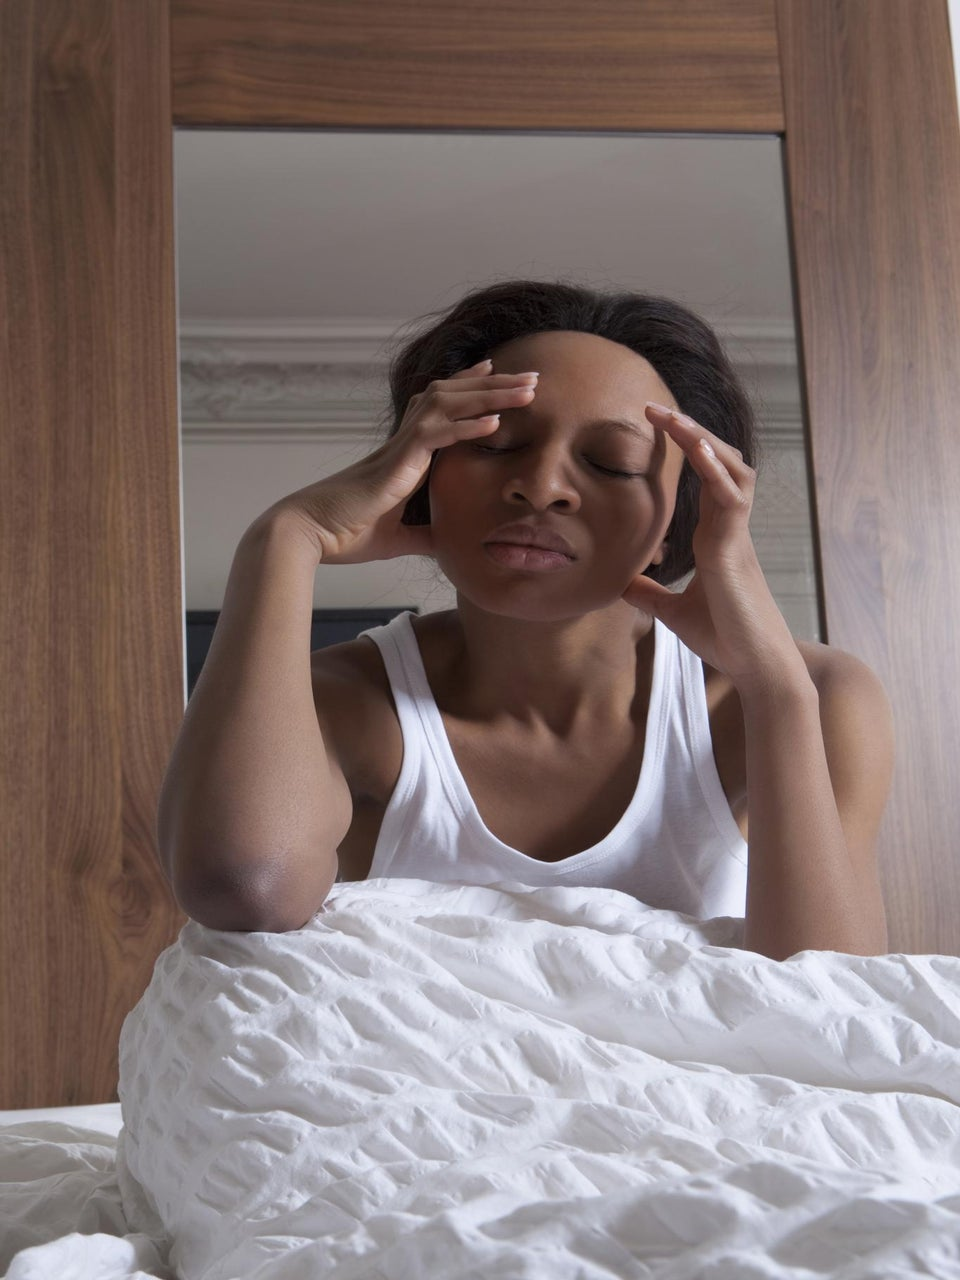 Intimacy Intervention: 'He's Not The Manliest In The Bedroom'